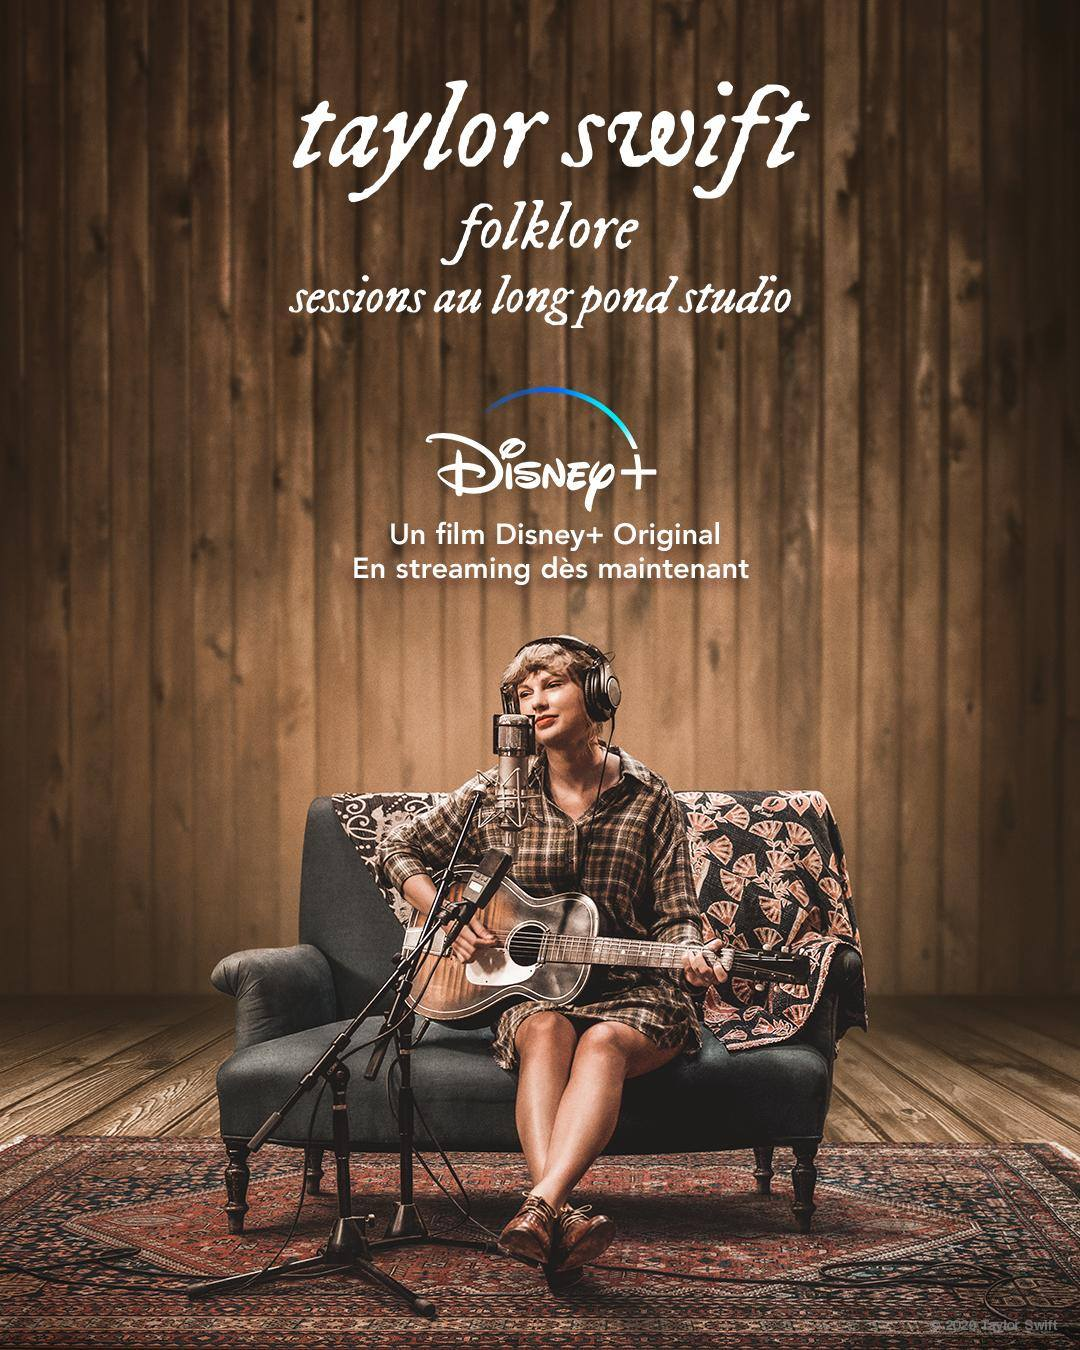 affiche poster taylor swift folklore long pond studio sessions disney